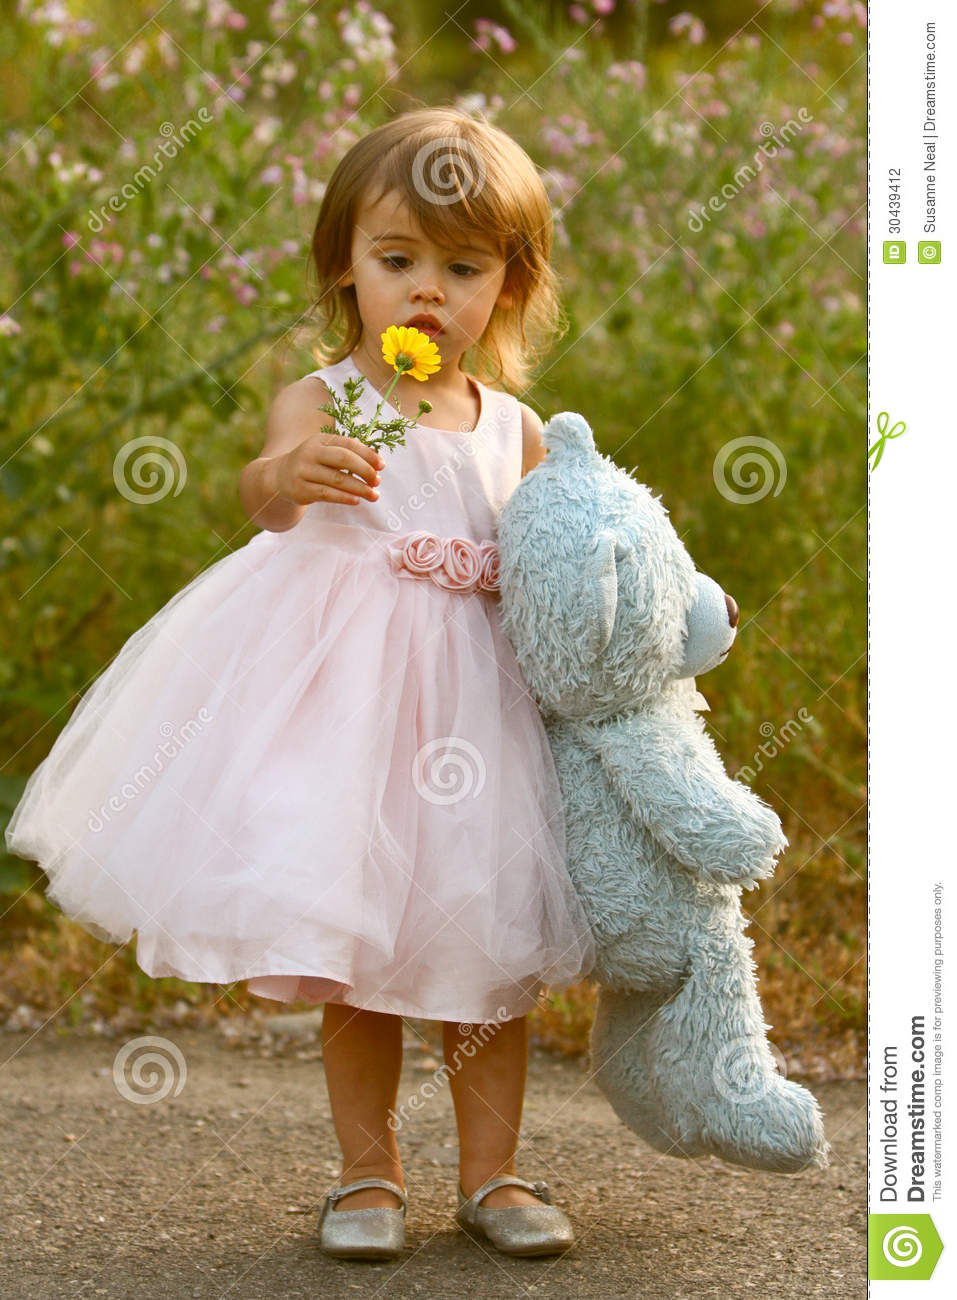 Dressy Twoyearold Girl In Pink Dress Holding Stuffed